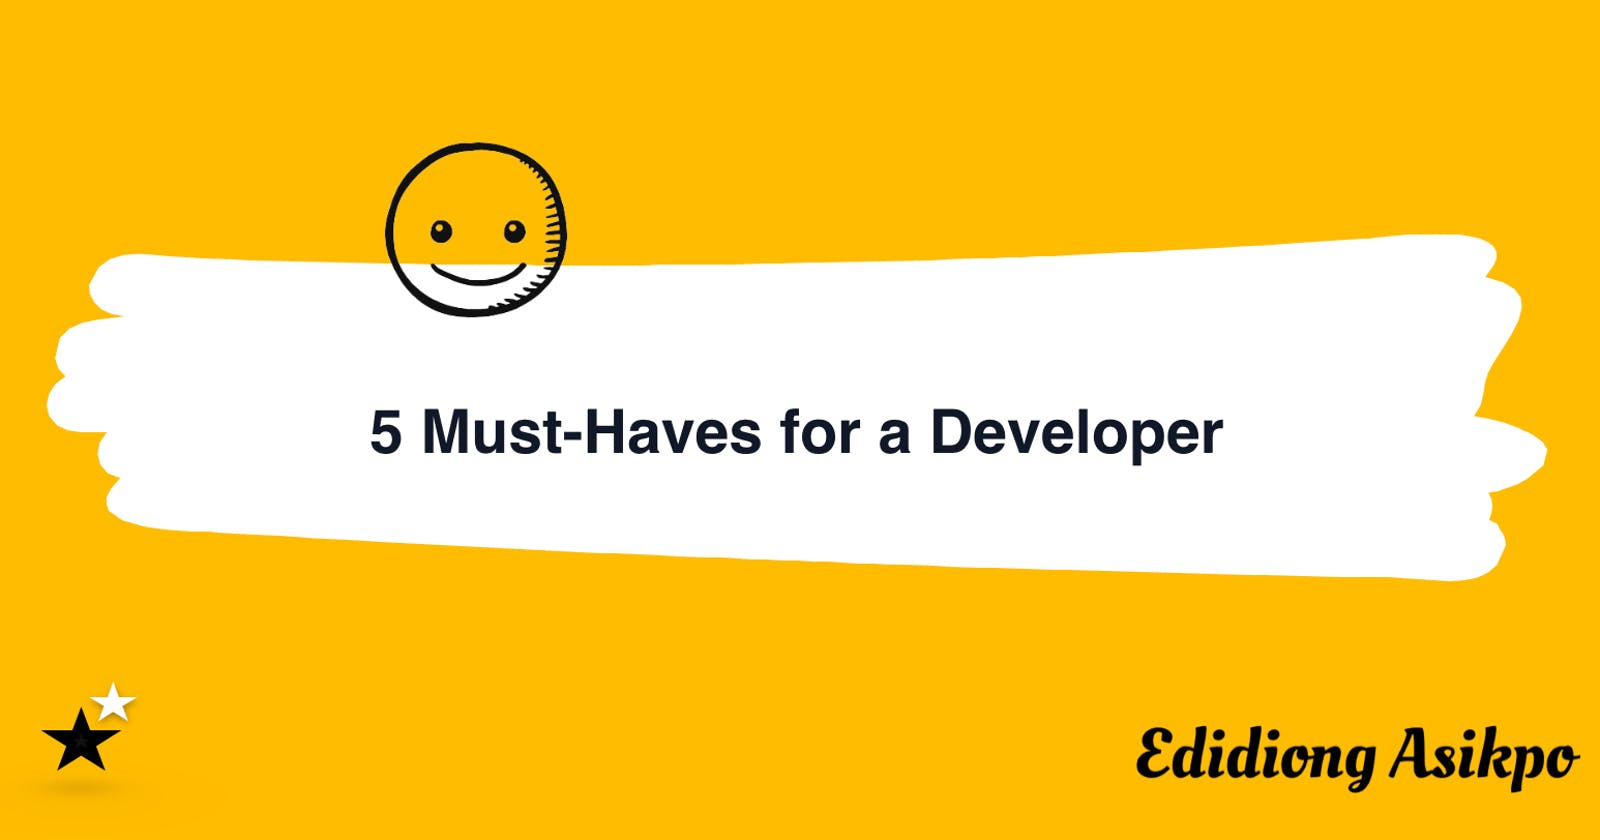 5 Must-Haves for a Developer